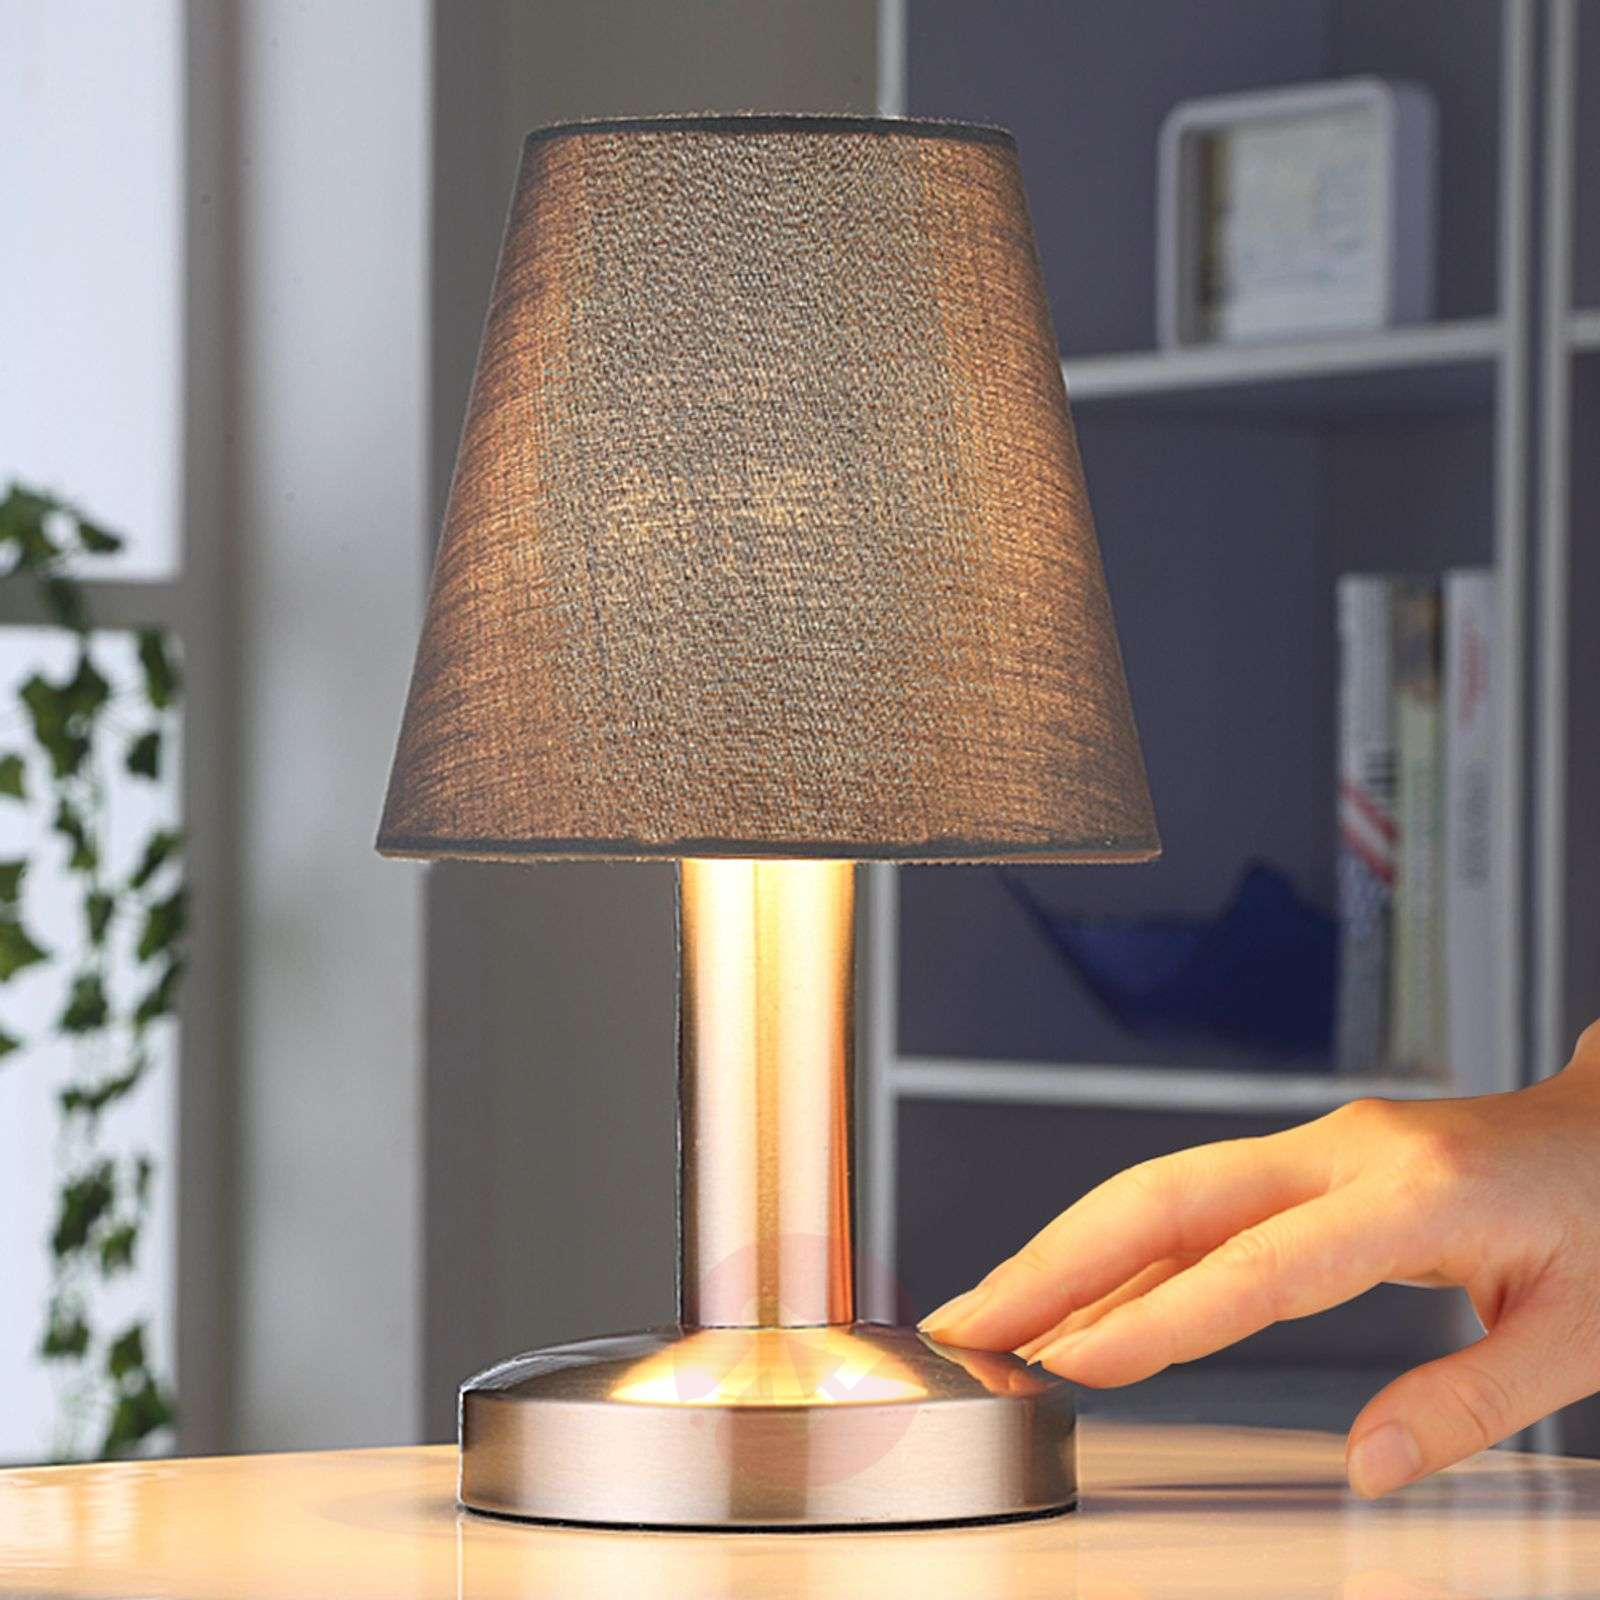 Grey fabric bedside table lamp Hanno-9620811-01